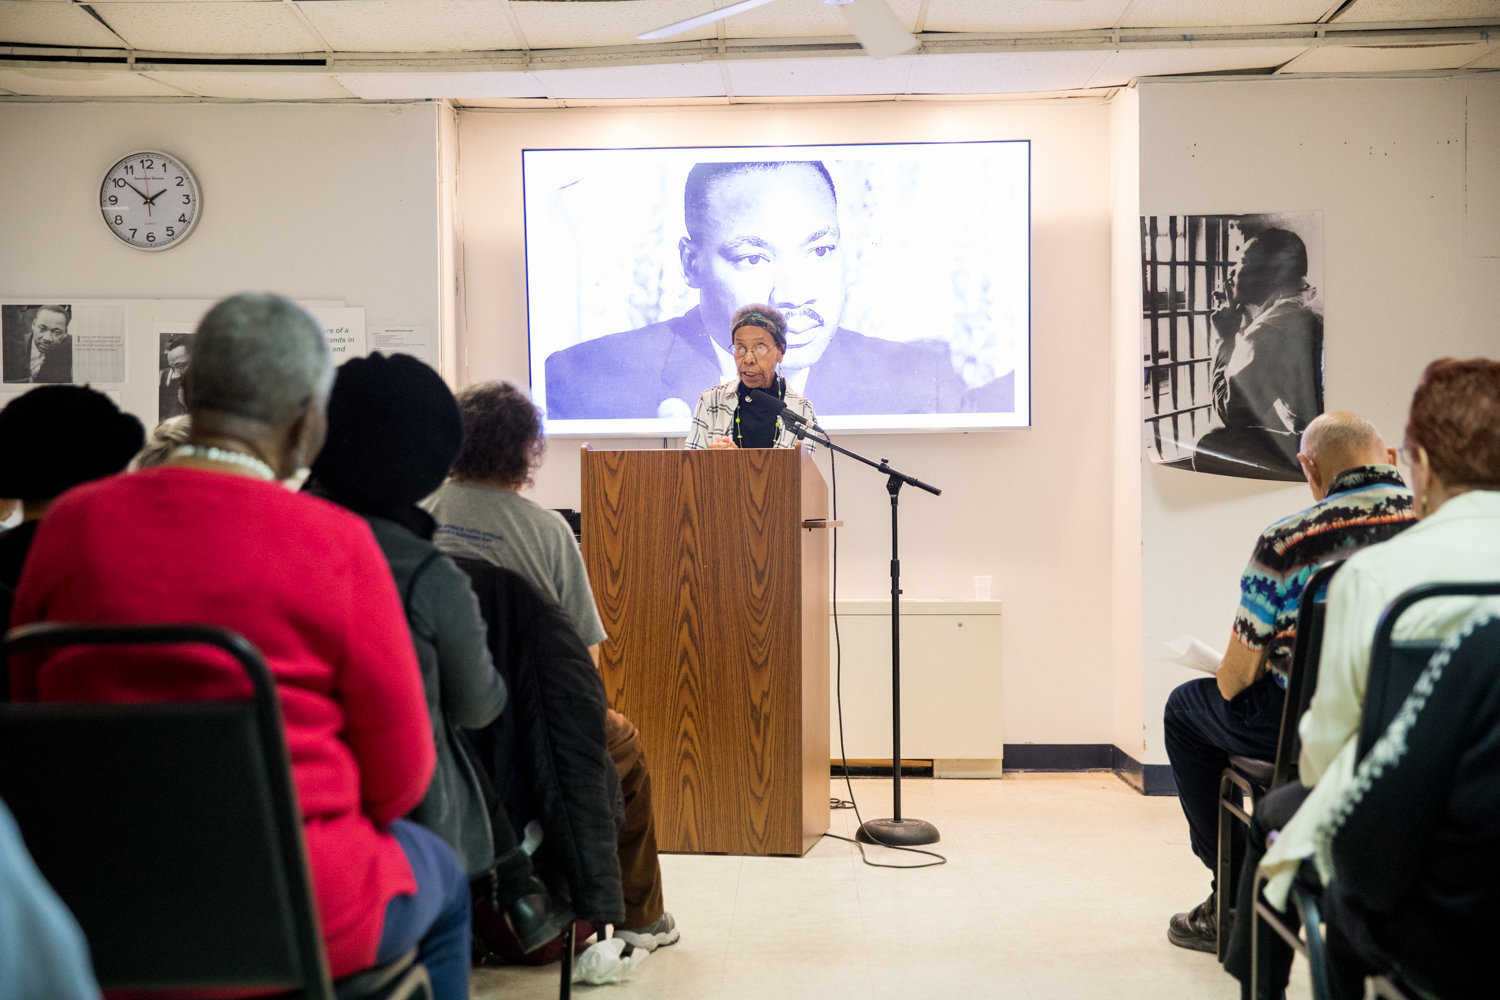 Ernece Kelly discusses the legacy of Martin Luther King Jr., with whom she worked in Chicago, during a presentation about the activist's legacy at RSS-Riverdale Senior Services last week.